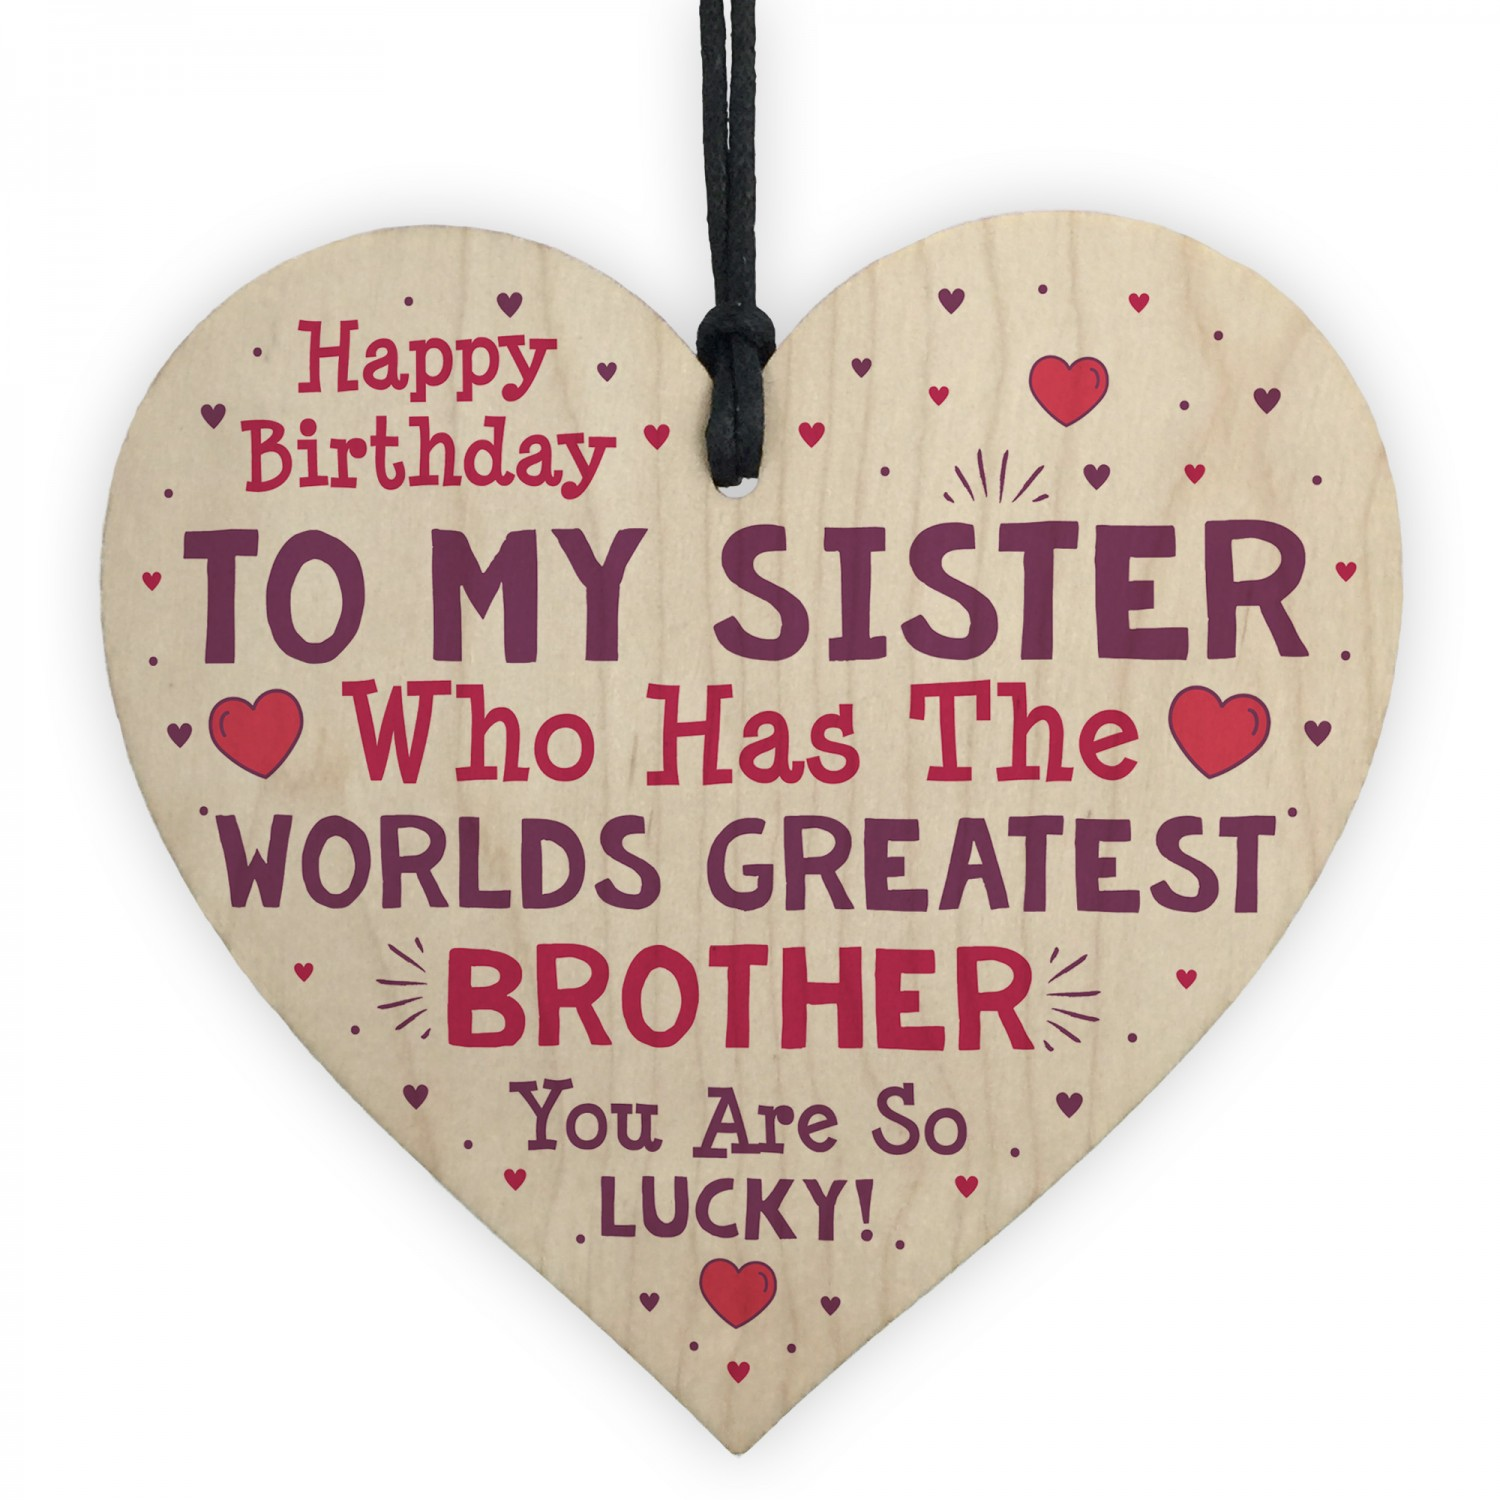 MY BROTHER HAS THE BEST SISTER IN THE WORLD GIFT HEART SIGN